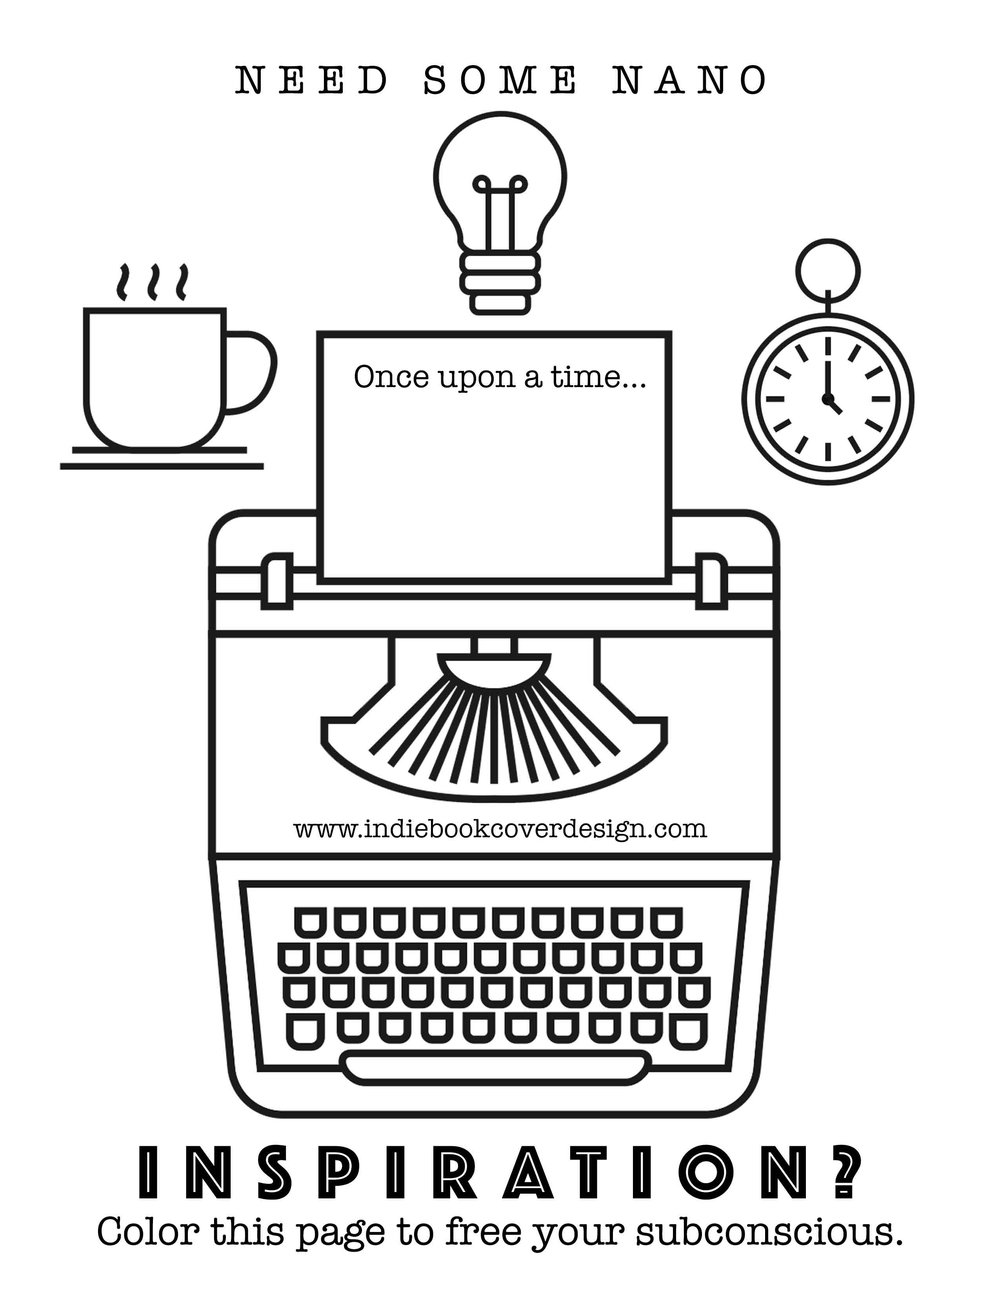 Indie book cover design nanowrimo coloring page